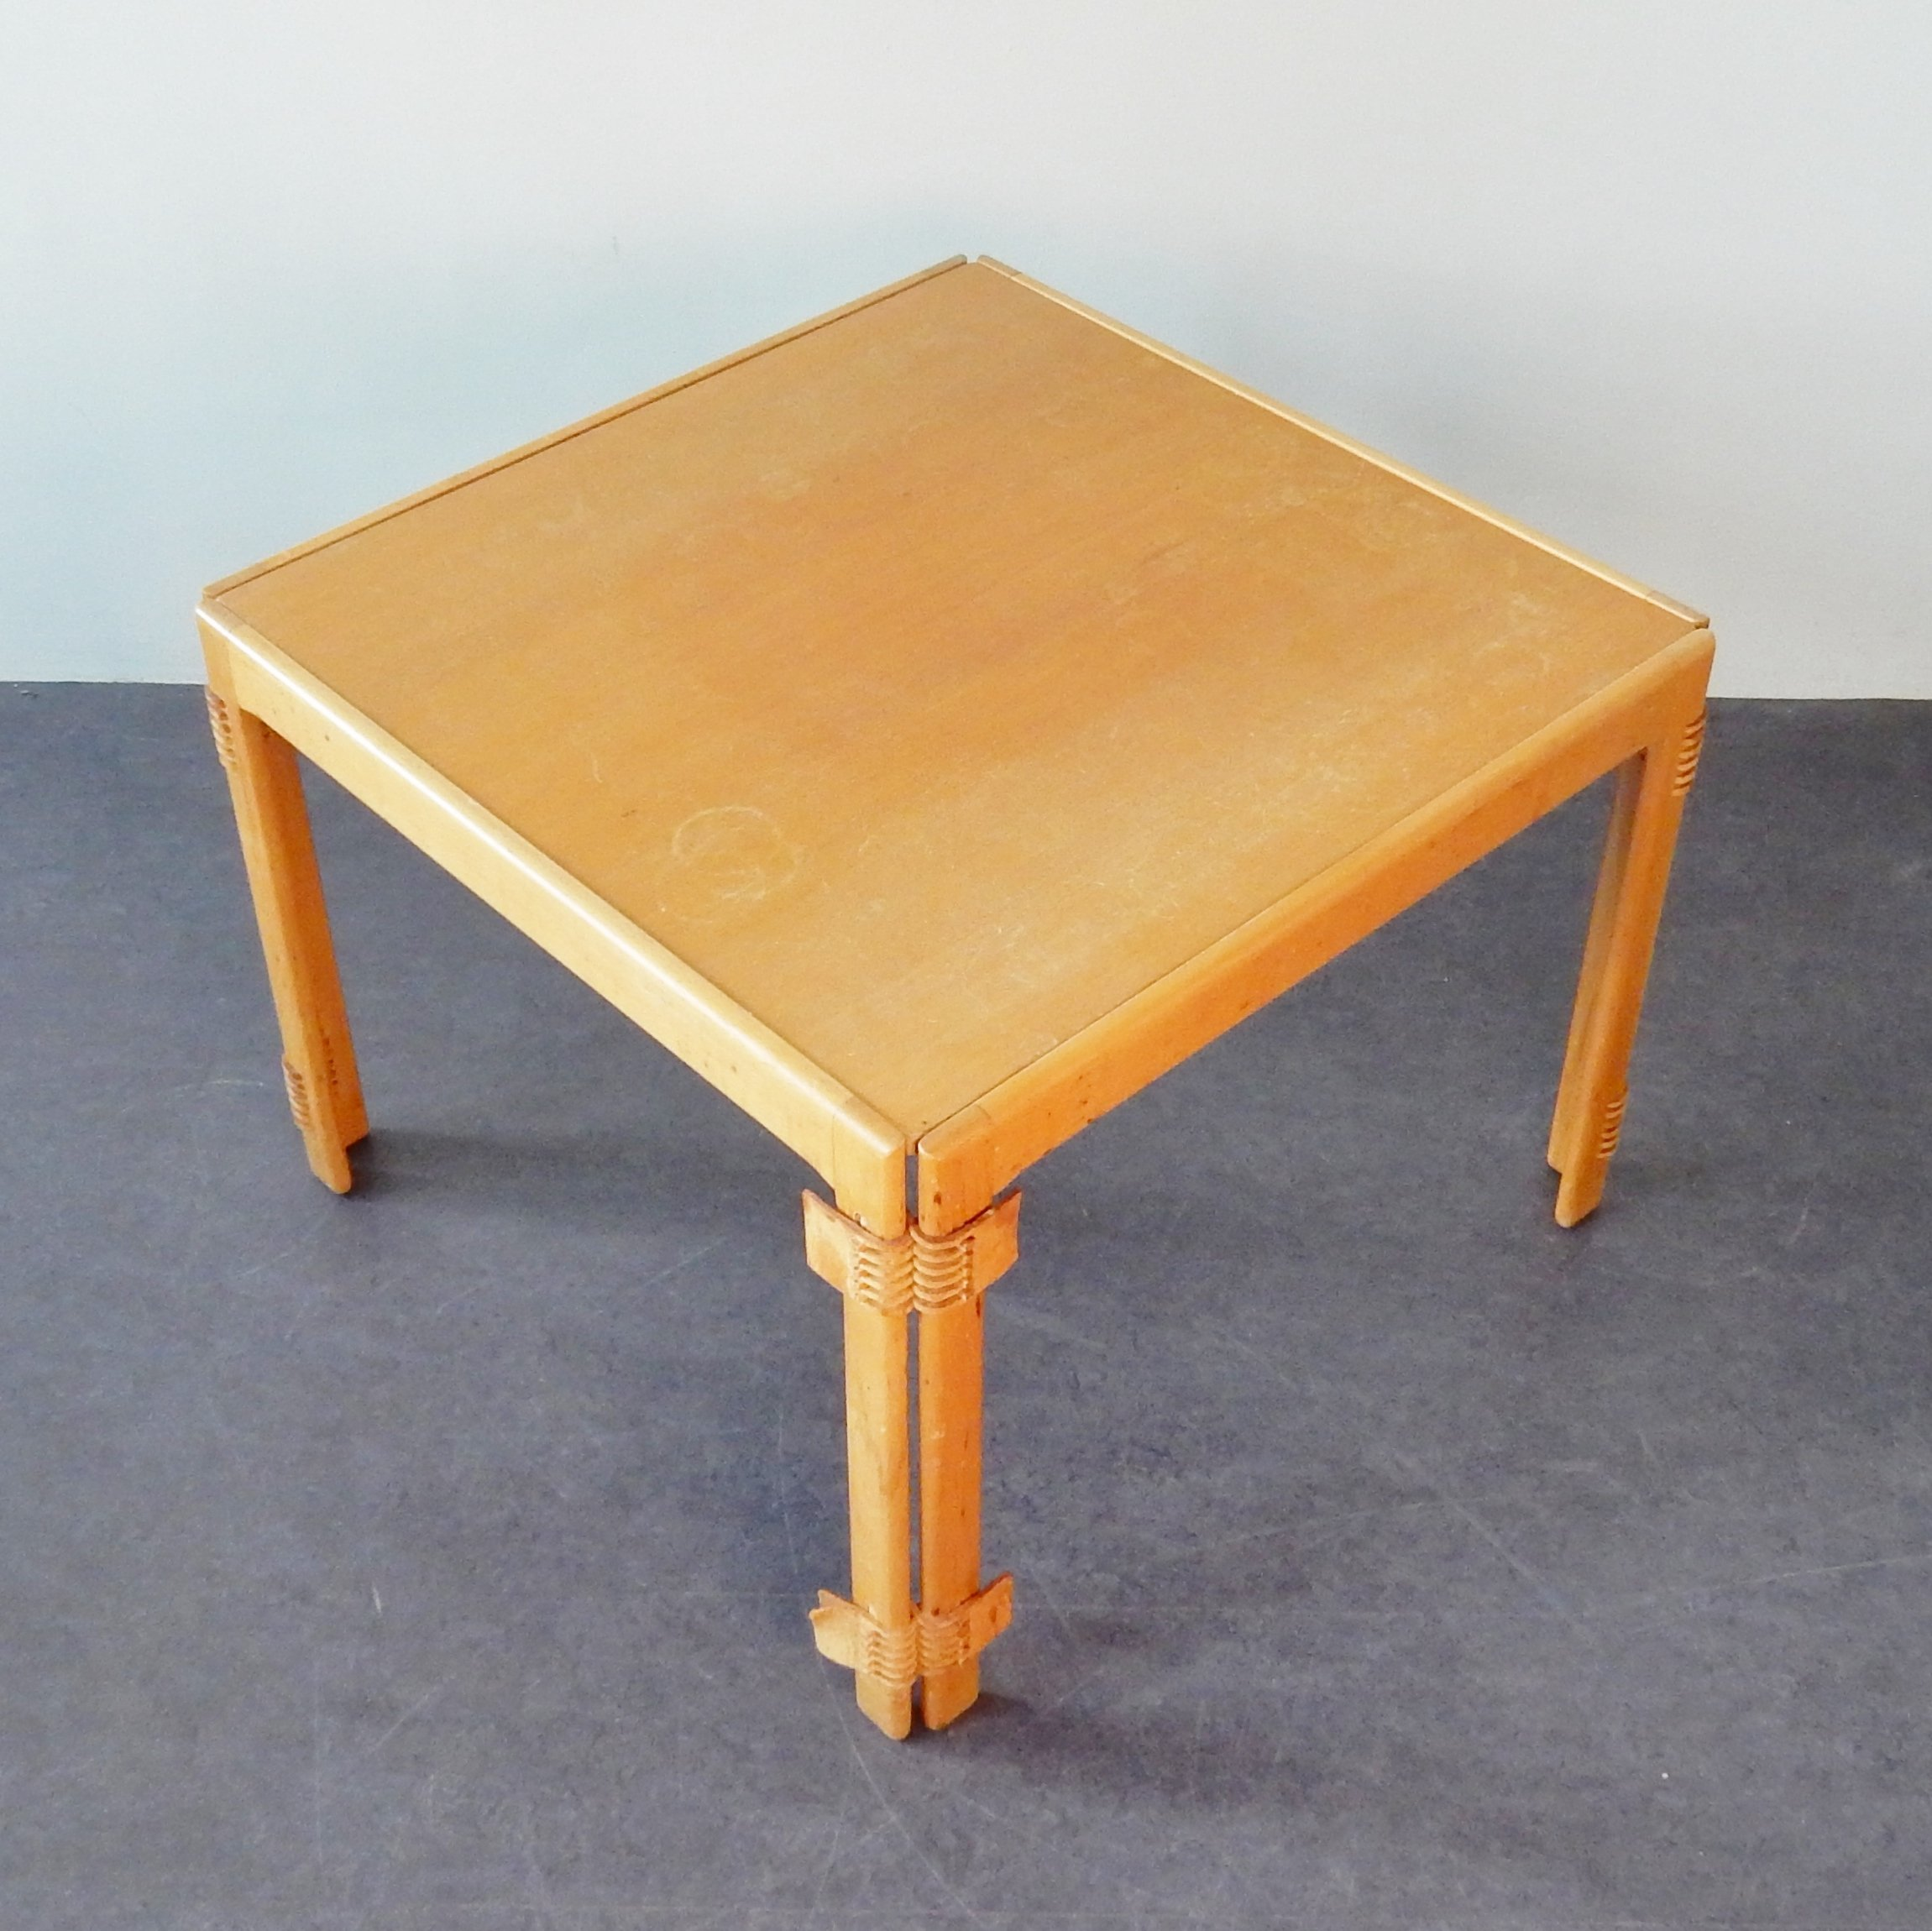 Foldable Wooden Frame Coffeetable With Leather Joints 82682